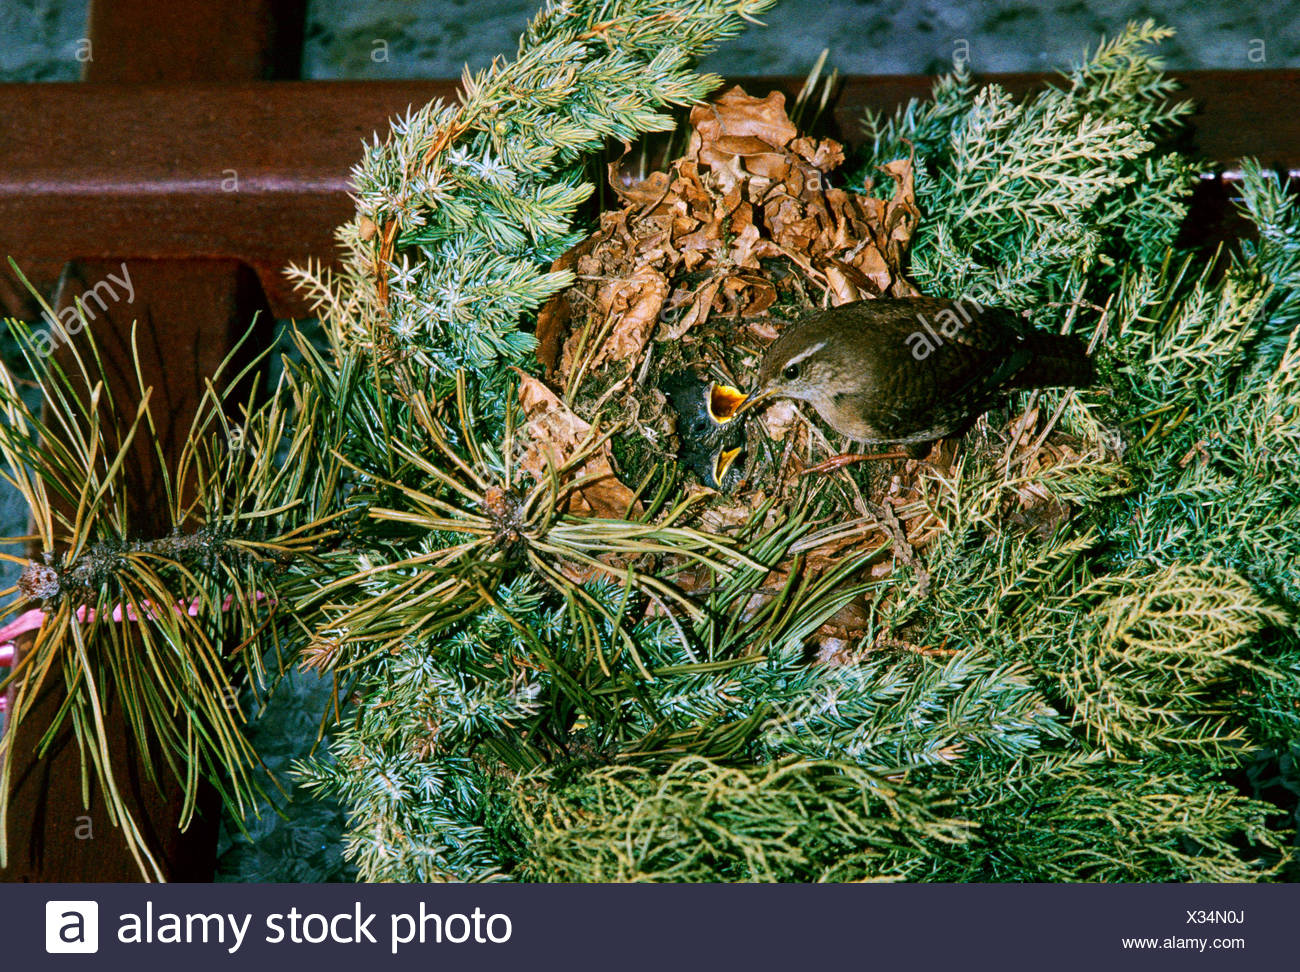 winter wren (Troglodytes troglodytes), birds nest  in door wreath, Germany - Stock Image